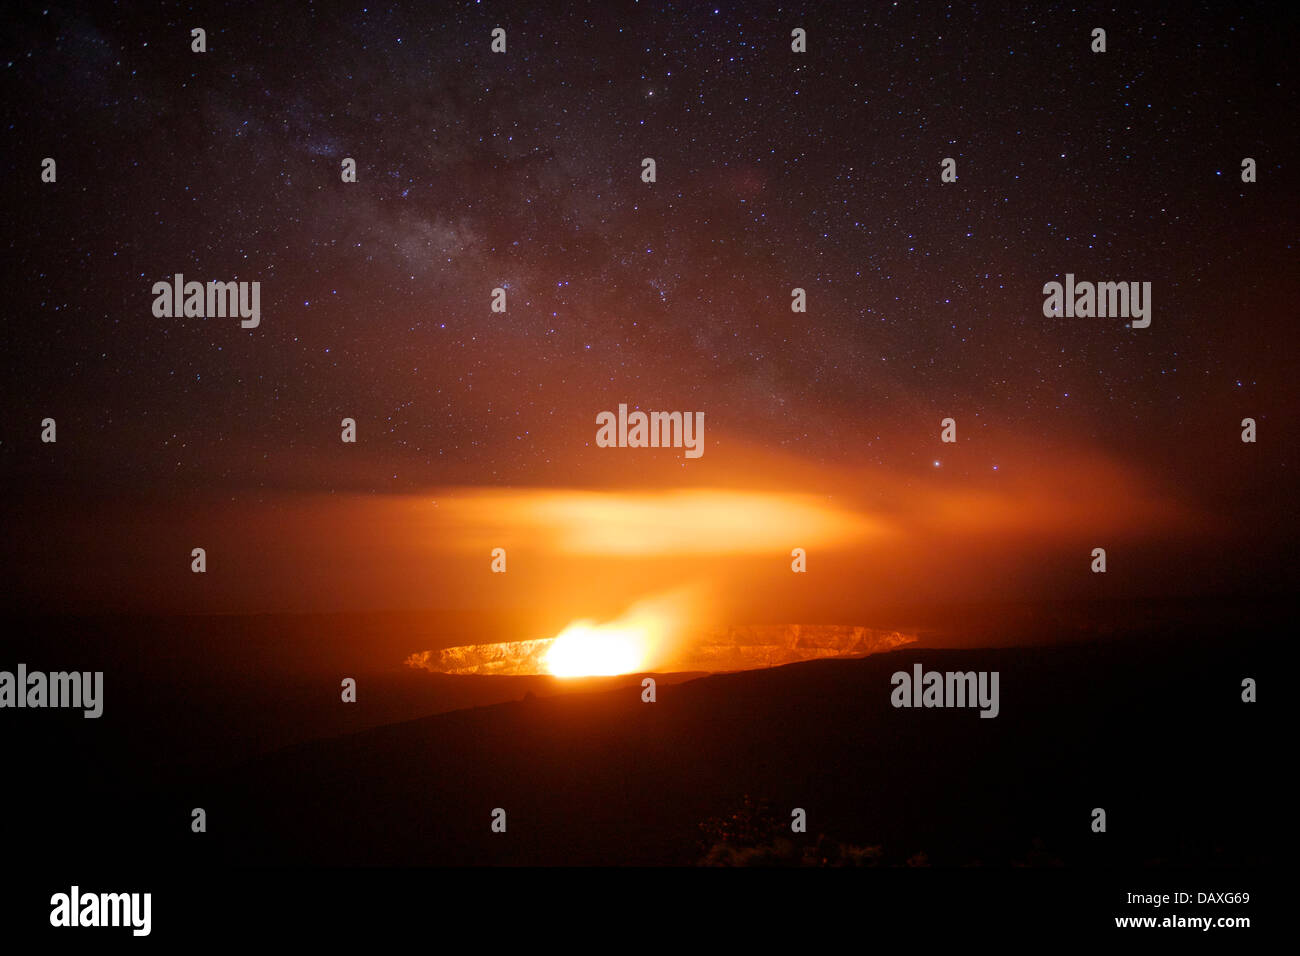 Nighttime view of Halemaumau Crater in the Kilauea caldera, in Hawaii Volcanoes National Park, on the Big Island - Stock Image